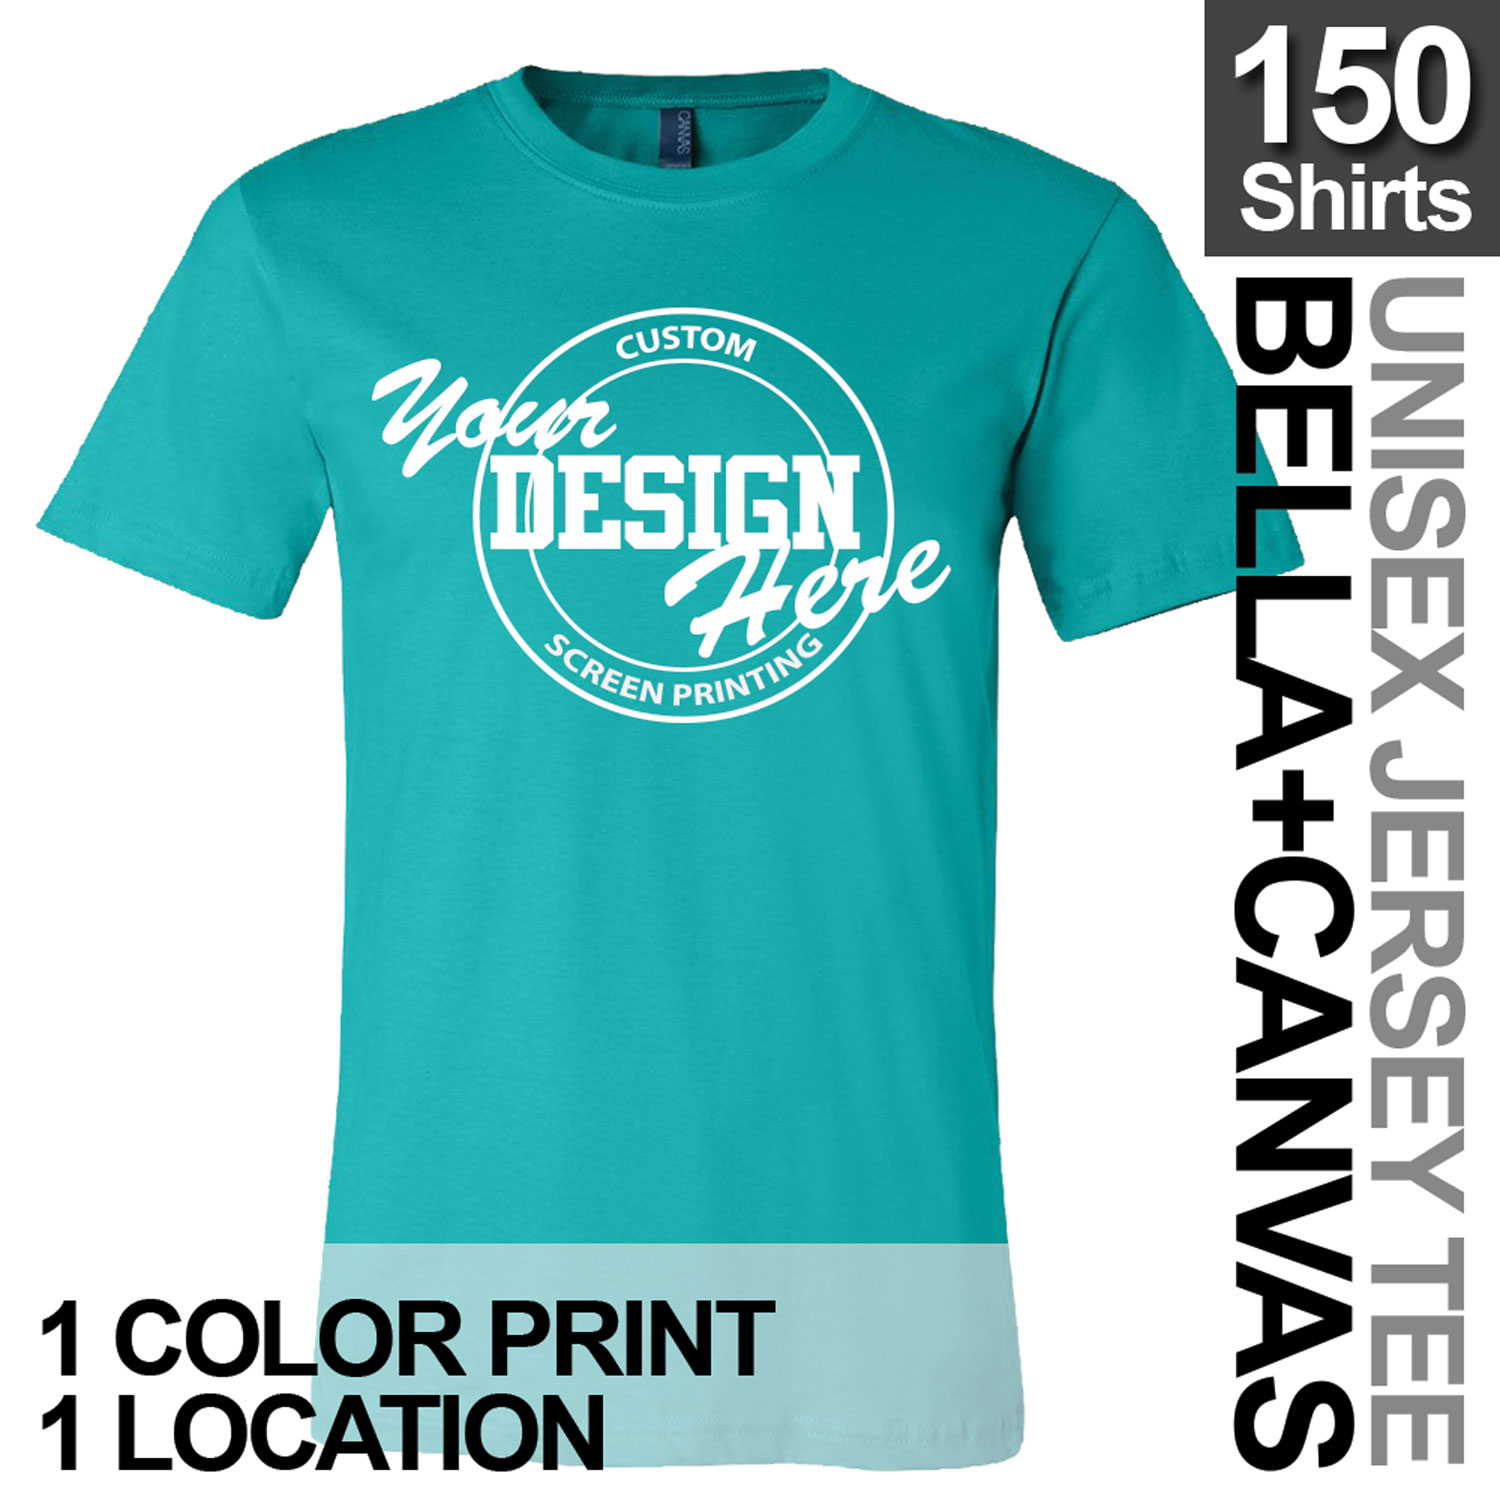 39c7dedb3 1 Print Color, 1 Location - Choose one (Left Chest, Right Chest, Full Front,  Full Back, Left Sleeve and/or Right Sleeve)